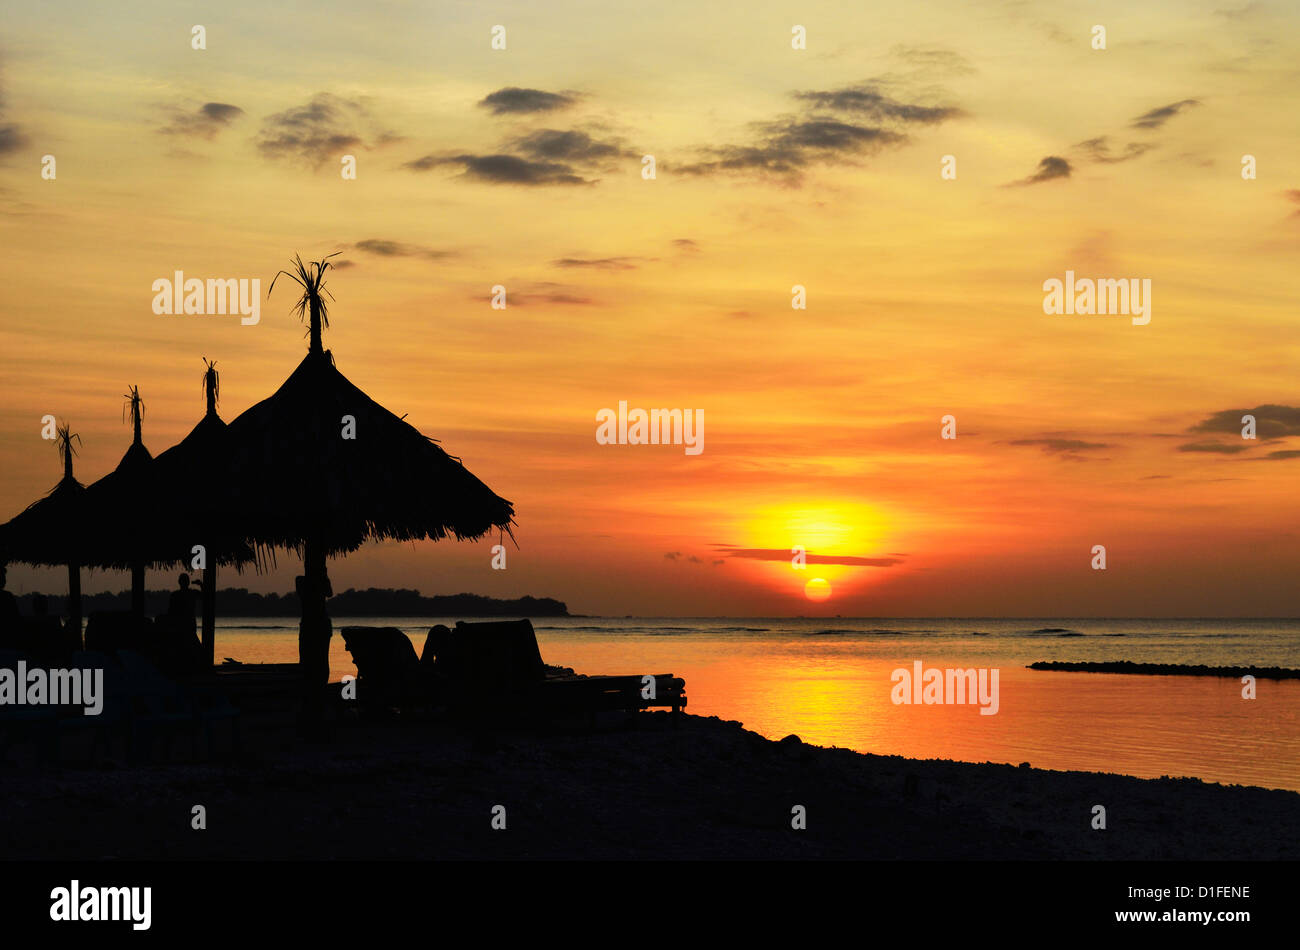 Sunset, Gili Air, Lombok, Indonesia, Southeast Asia, Asia - Stock Image